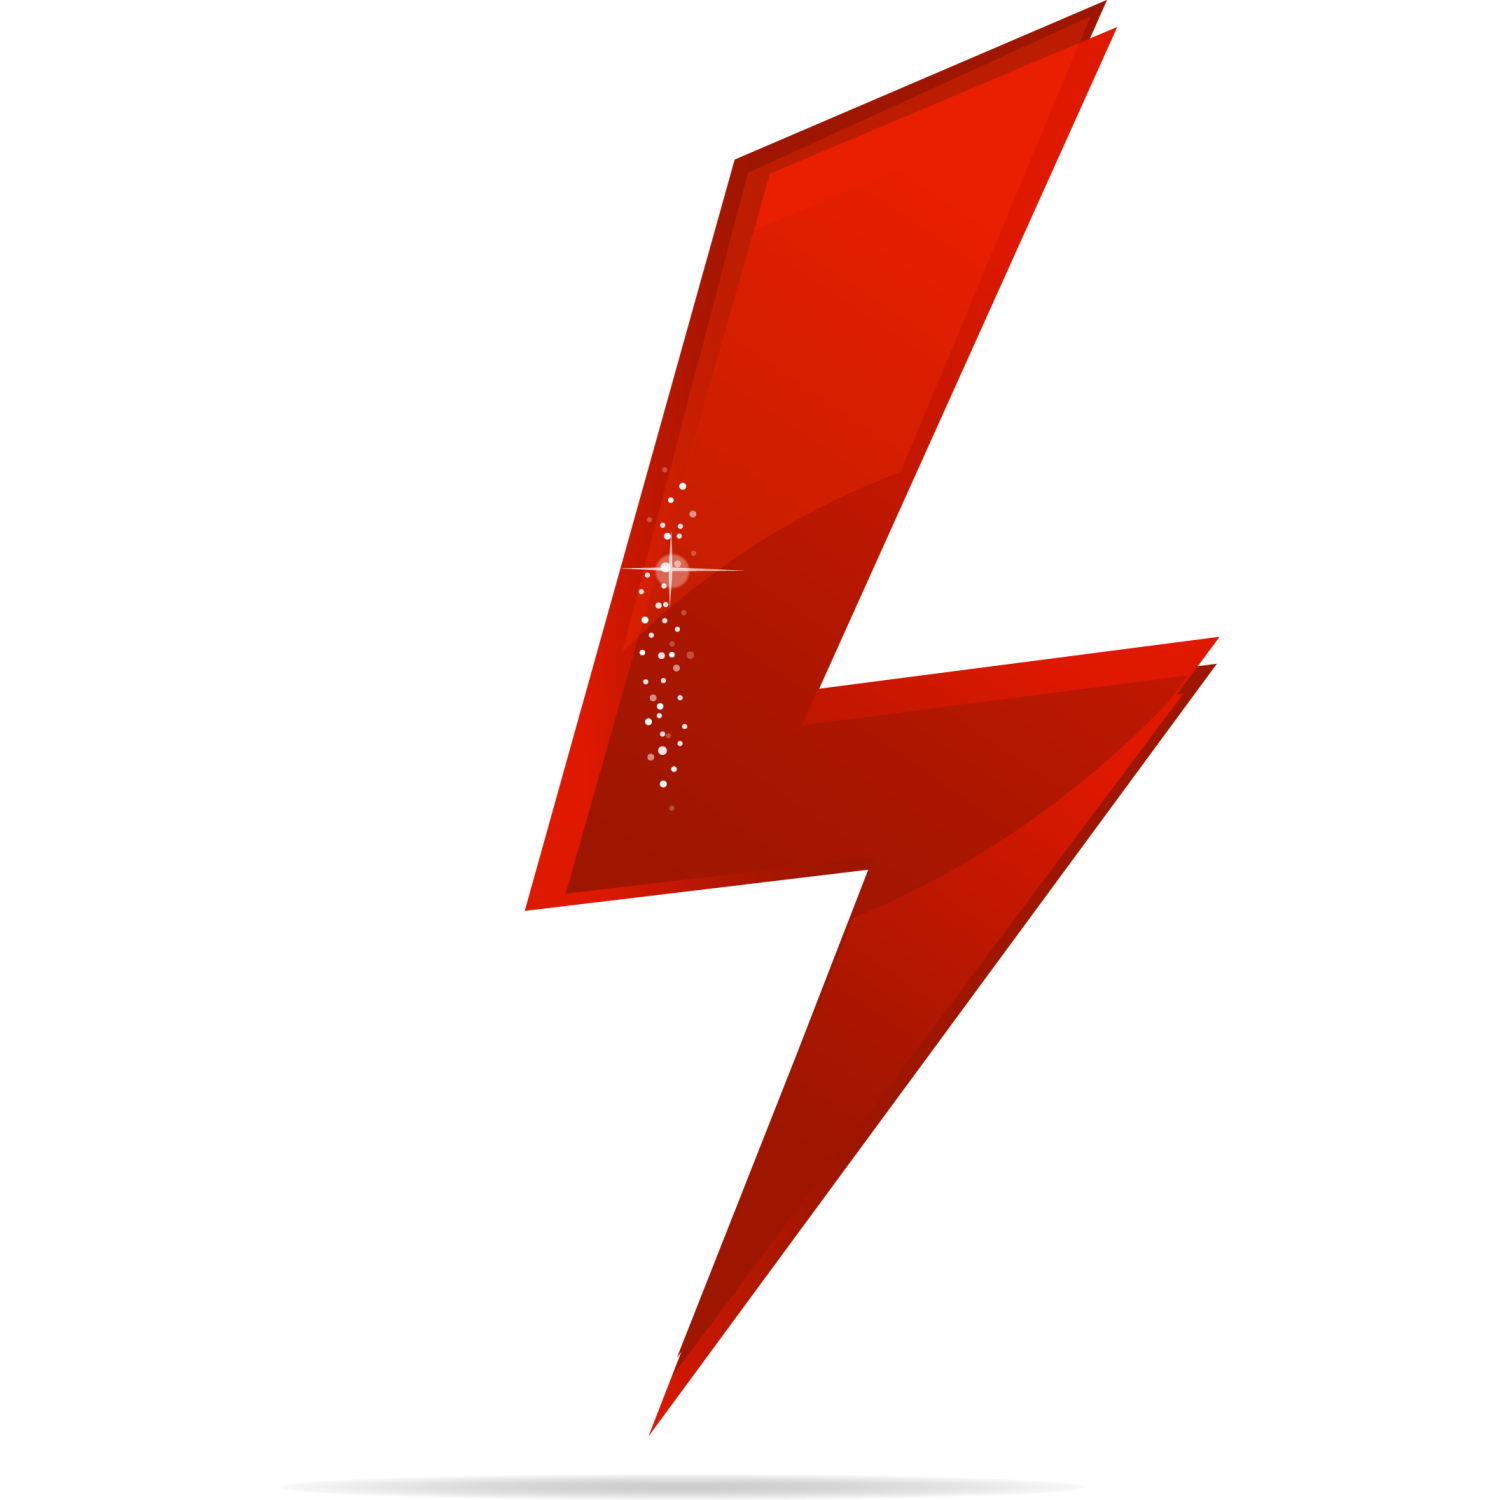 Red power icon